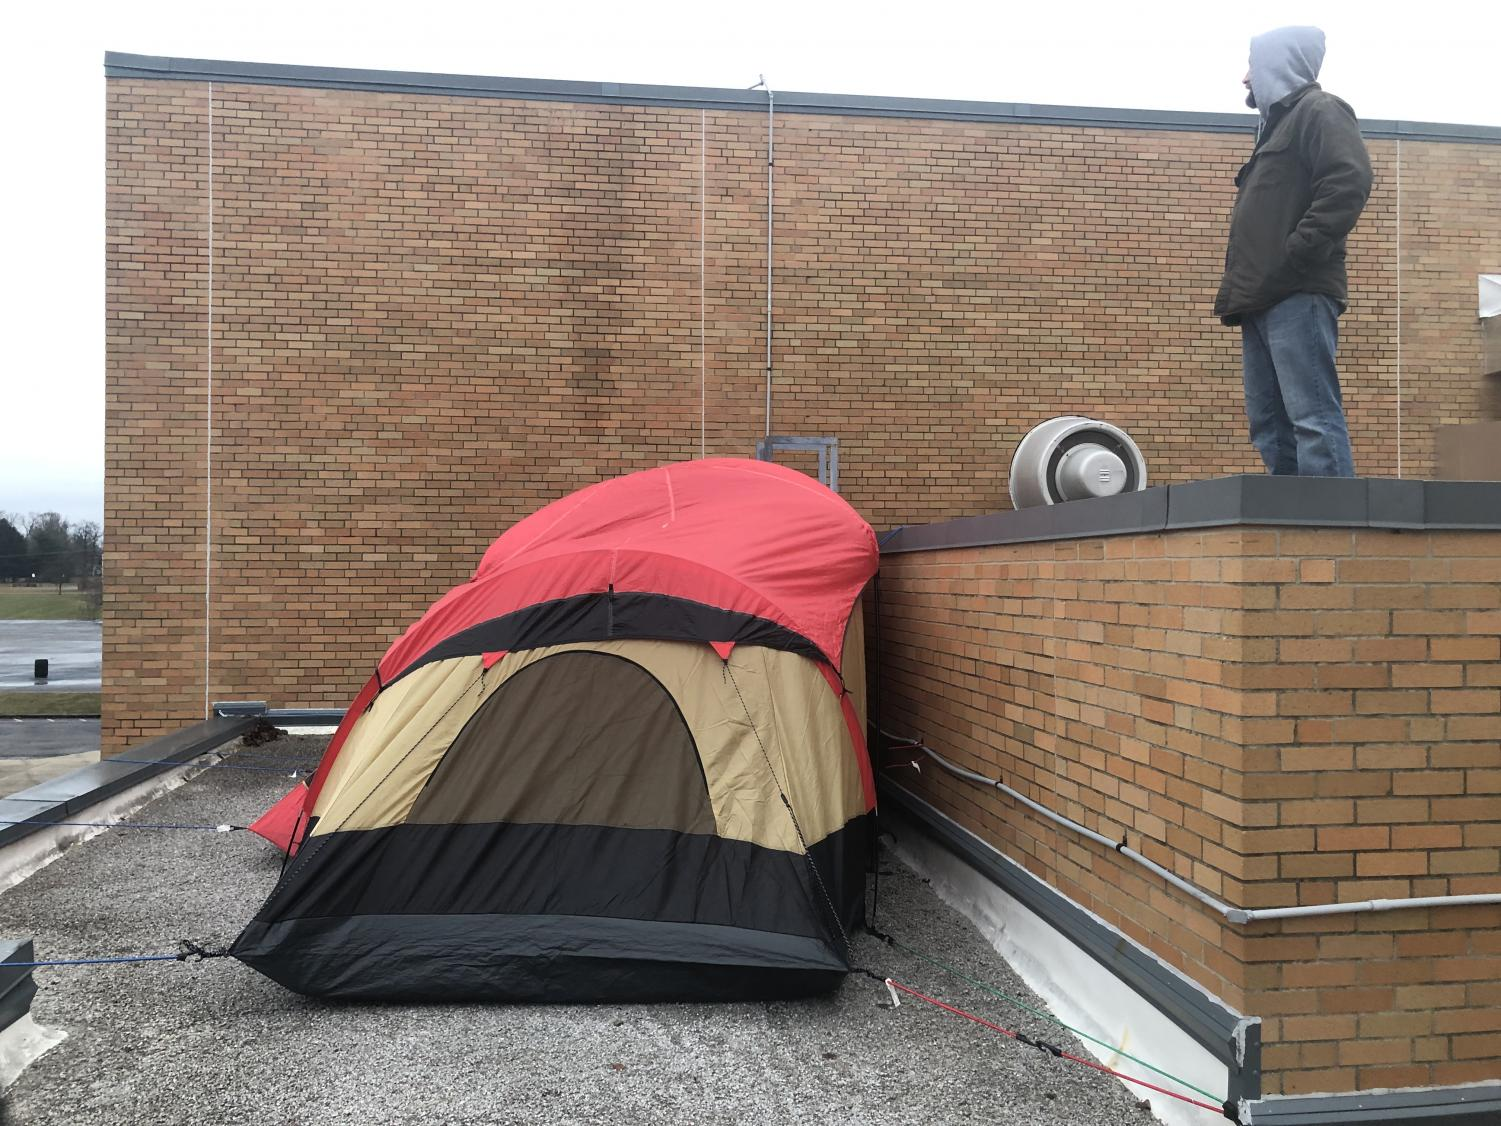 The tent used for the overnight rooftop stay of Mr. Gasaway and Mr. Grill for the shoes for Africa charity donation competition.